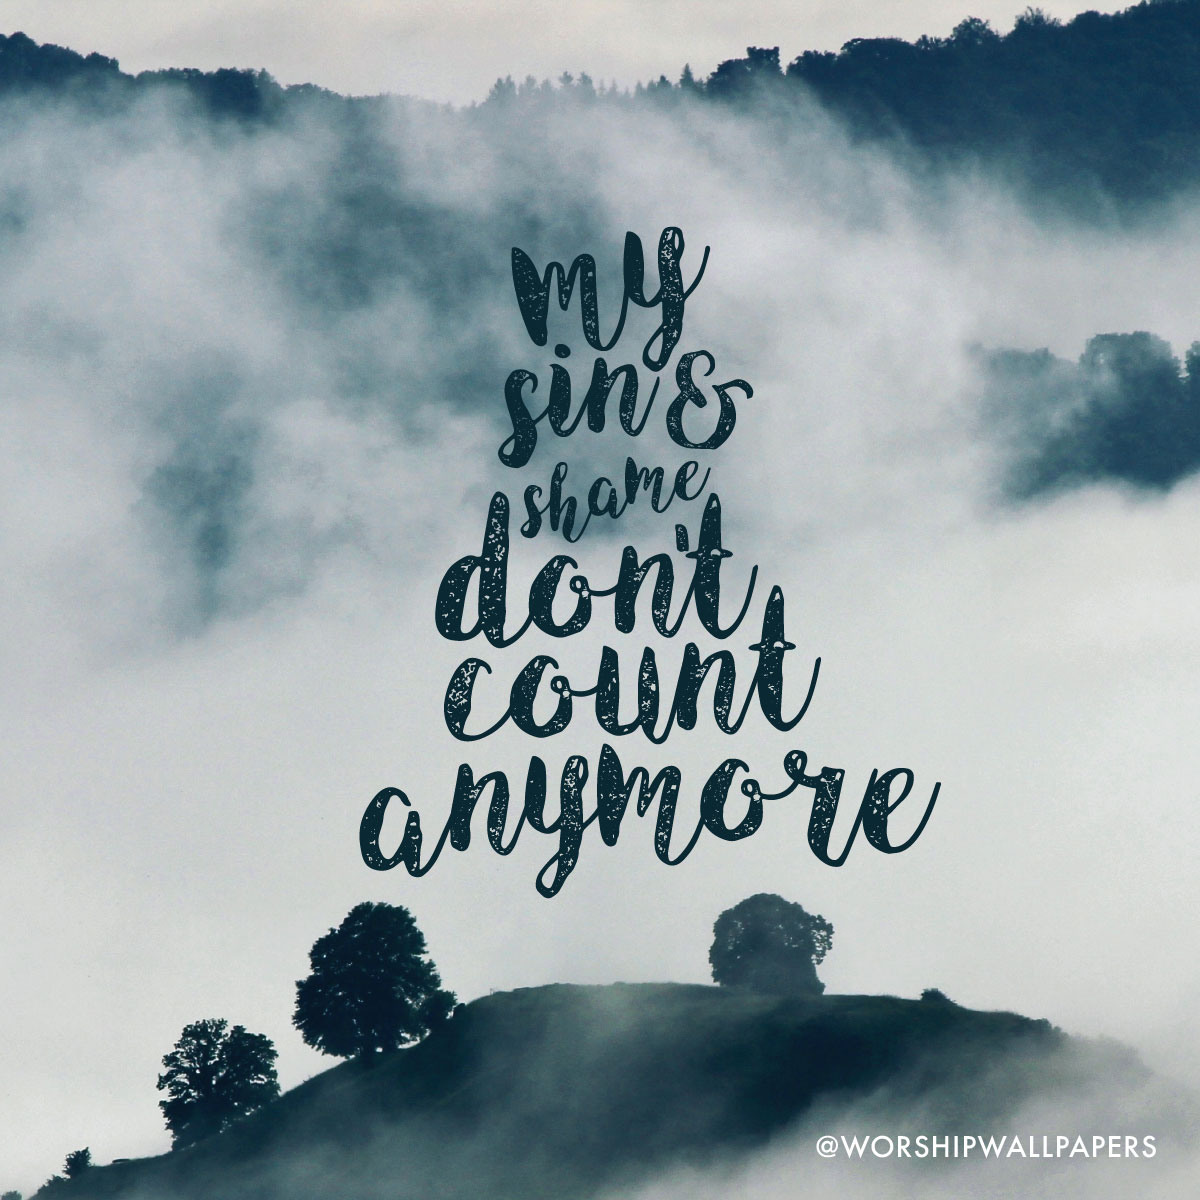 Hillsong wallpaper